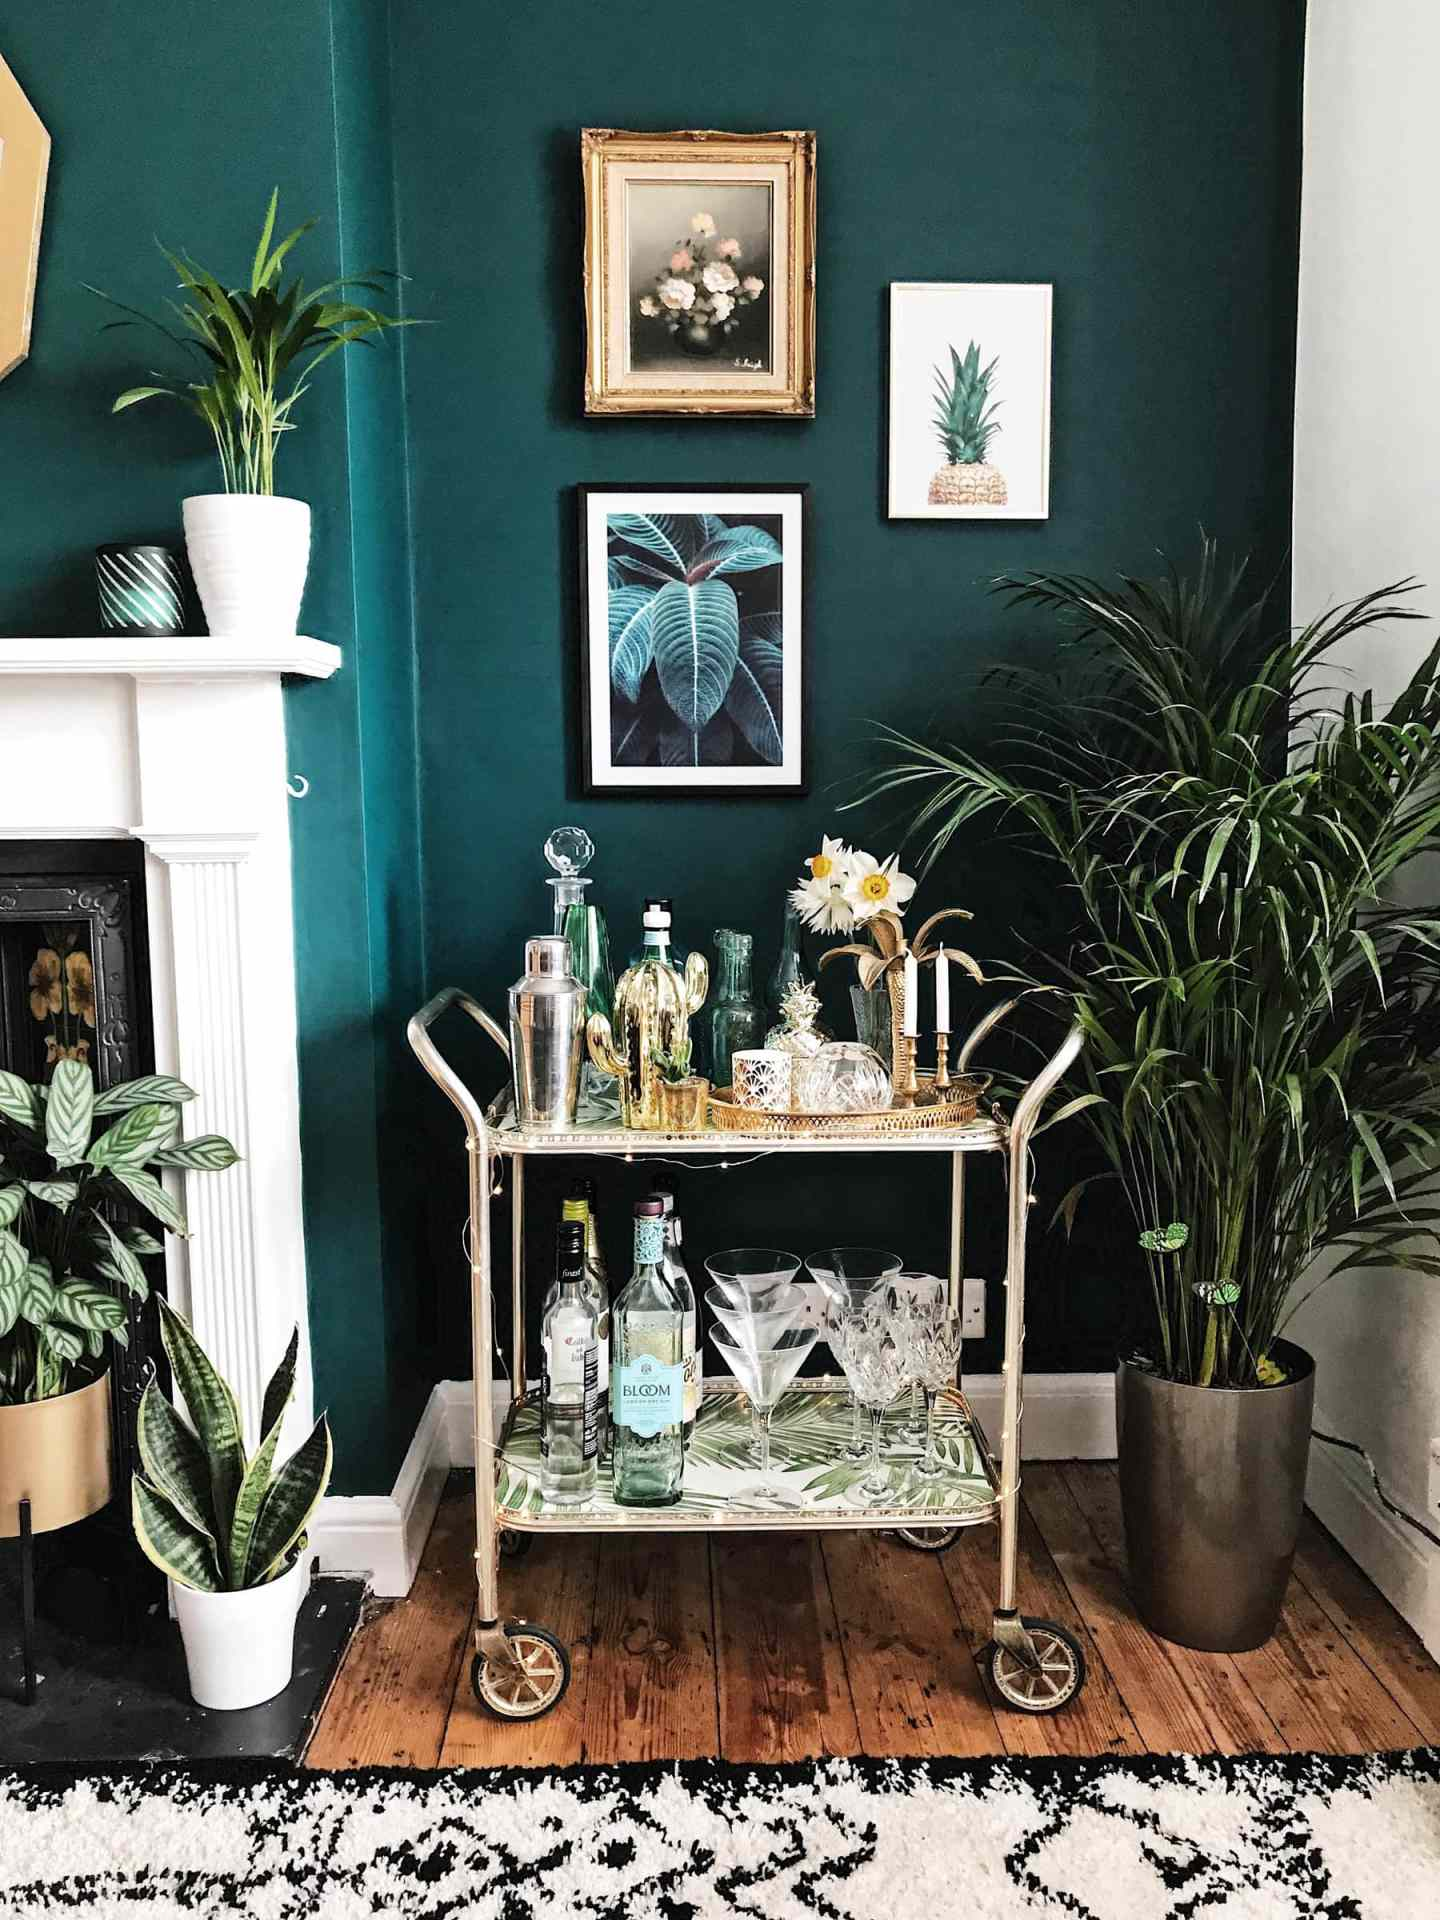 Don't know what to do with a corner? Add plants and botanical prints